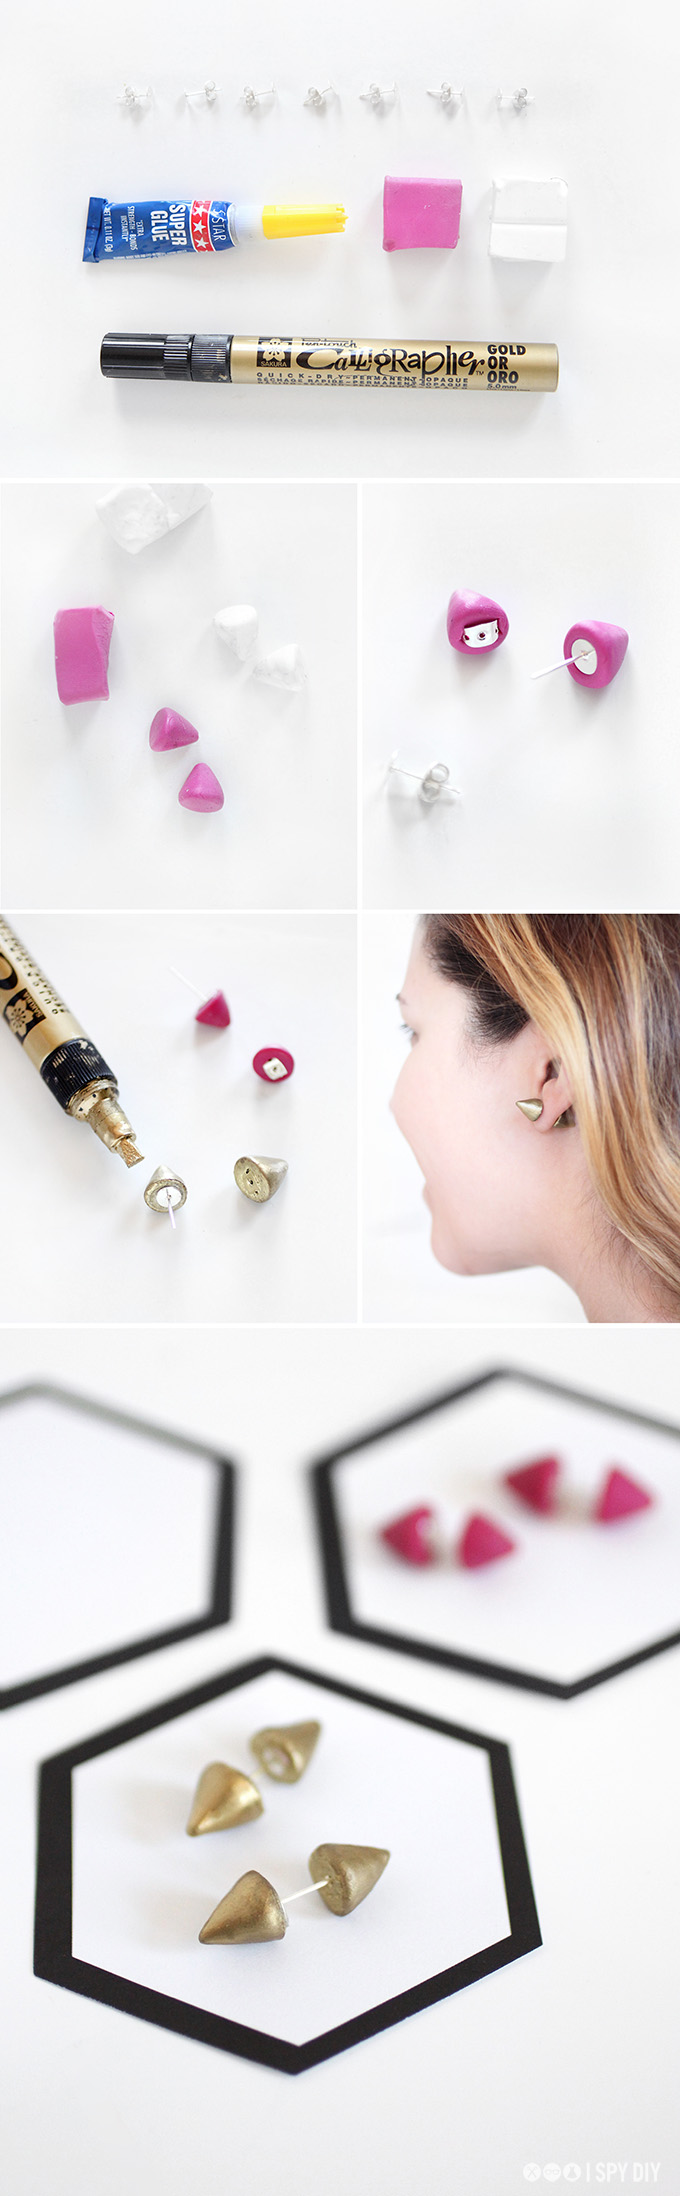 Ispydiy_spikeearrings_steps